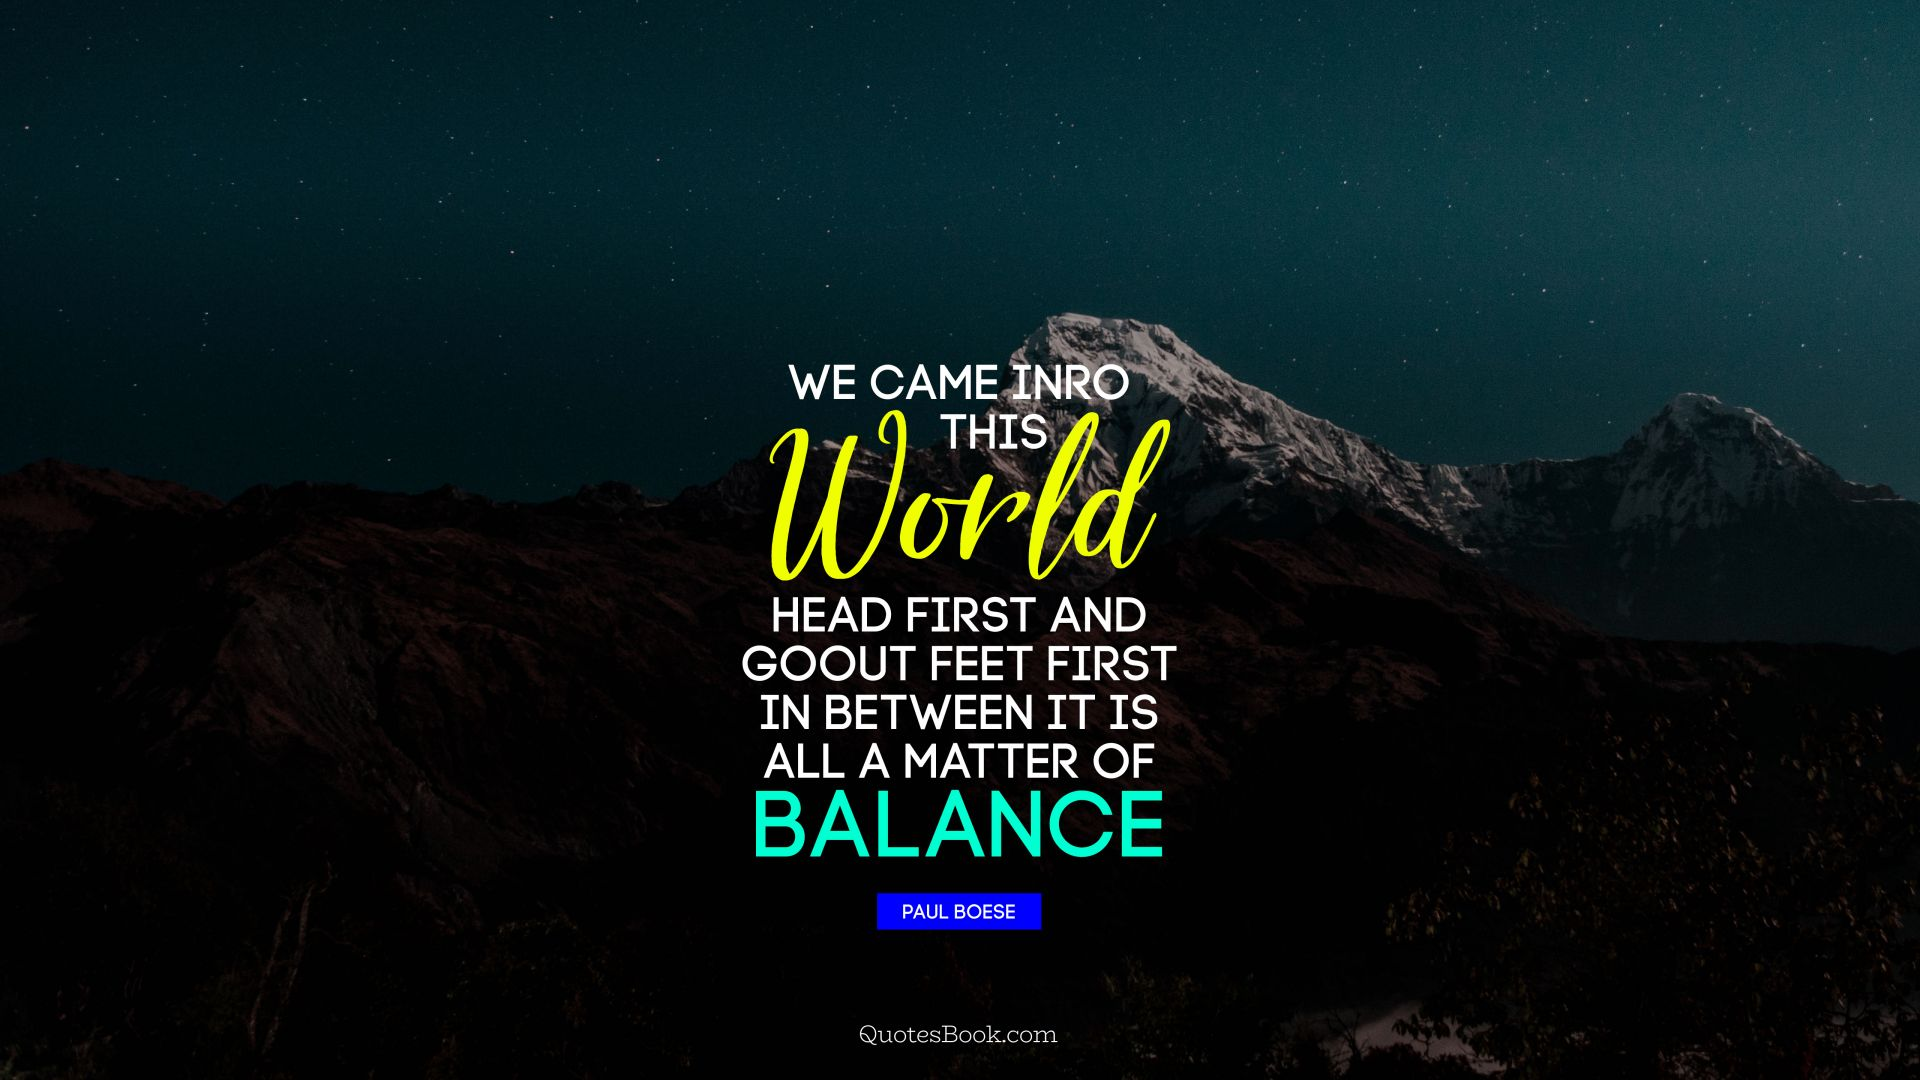 We came inro this world head first and go out feet first in between it is all a matter of balance